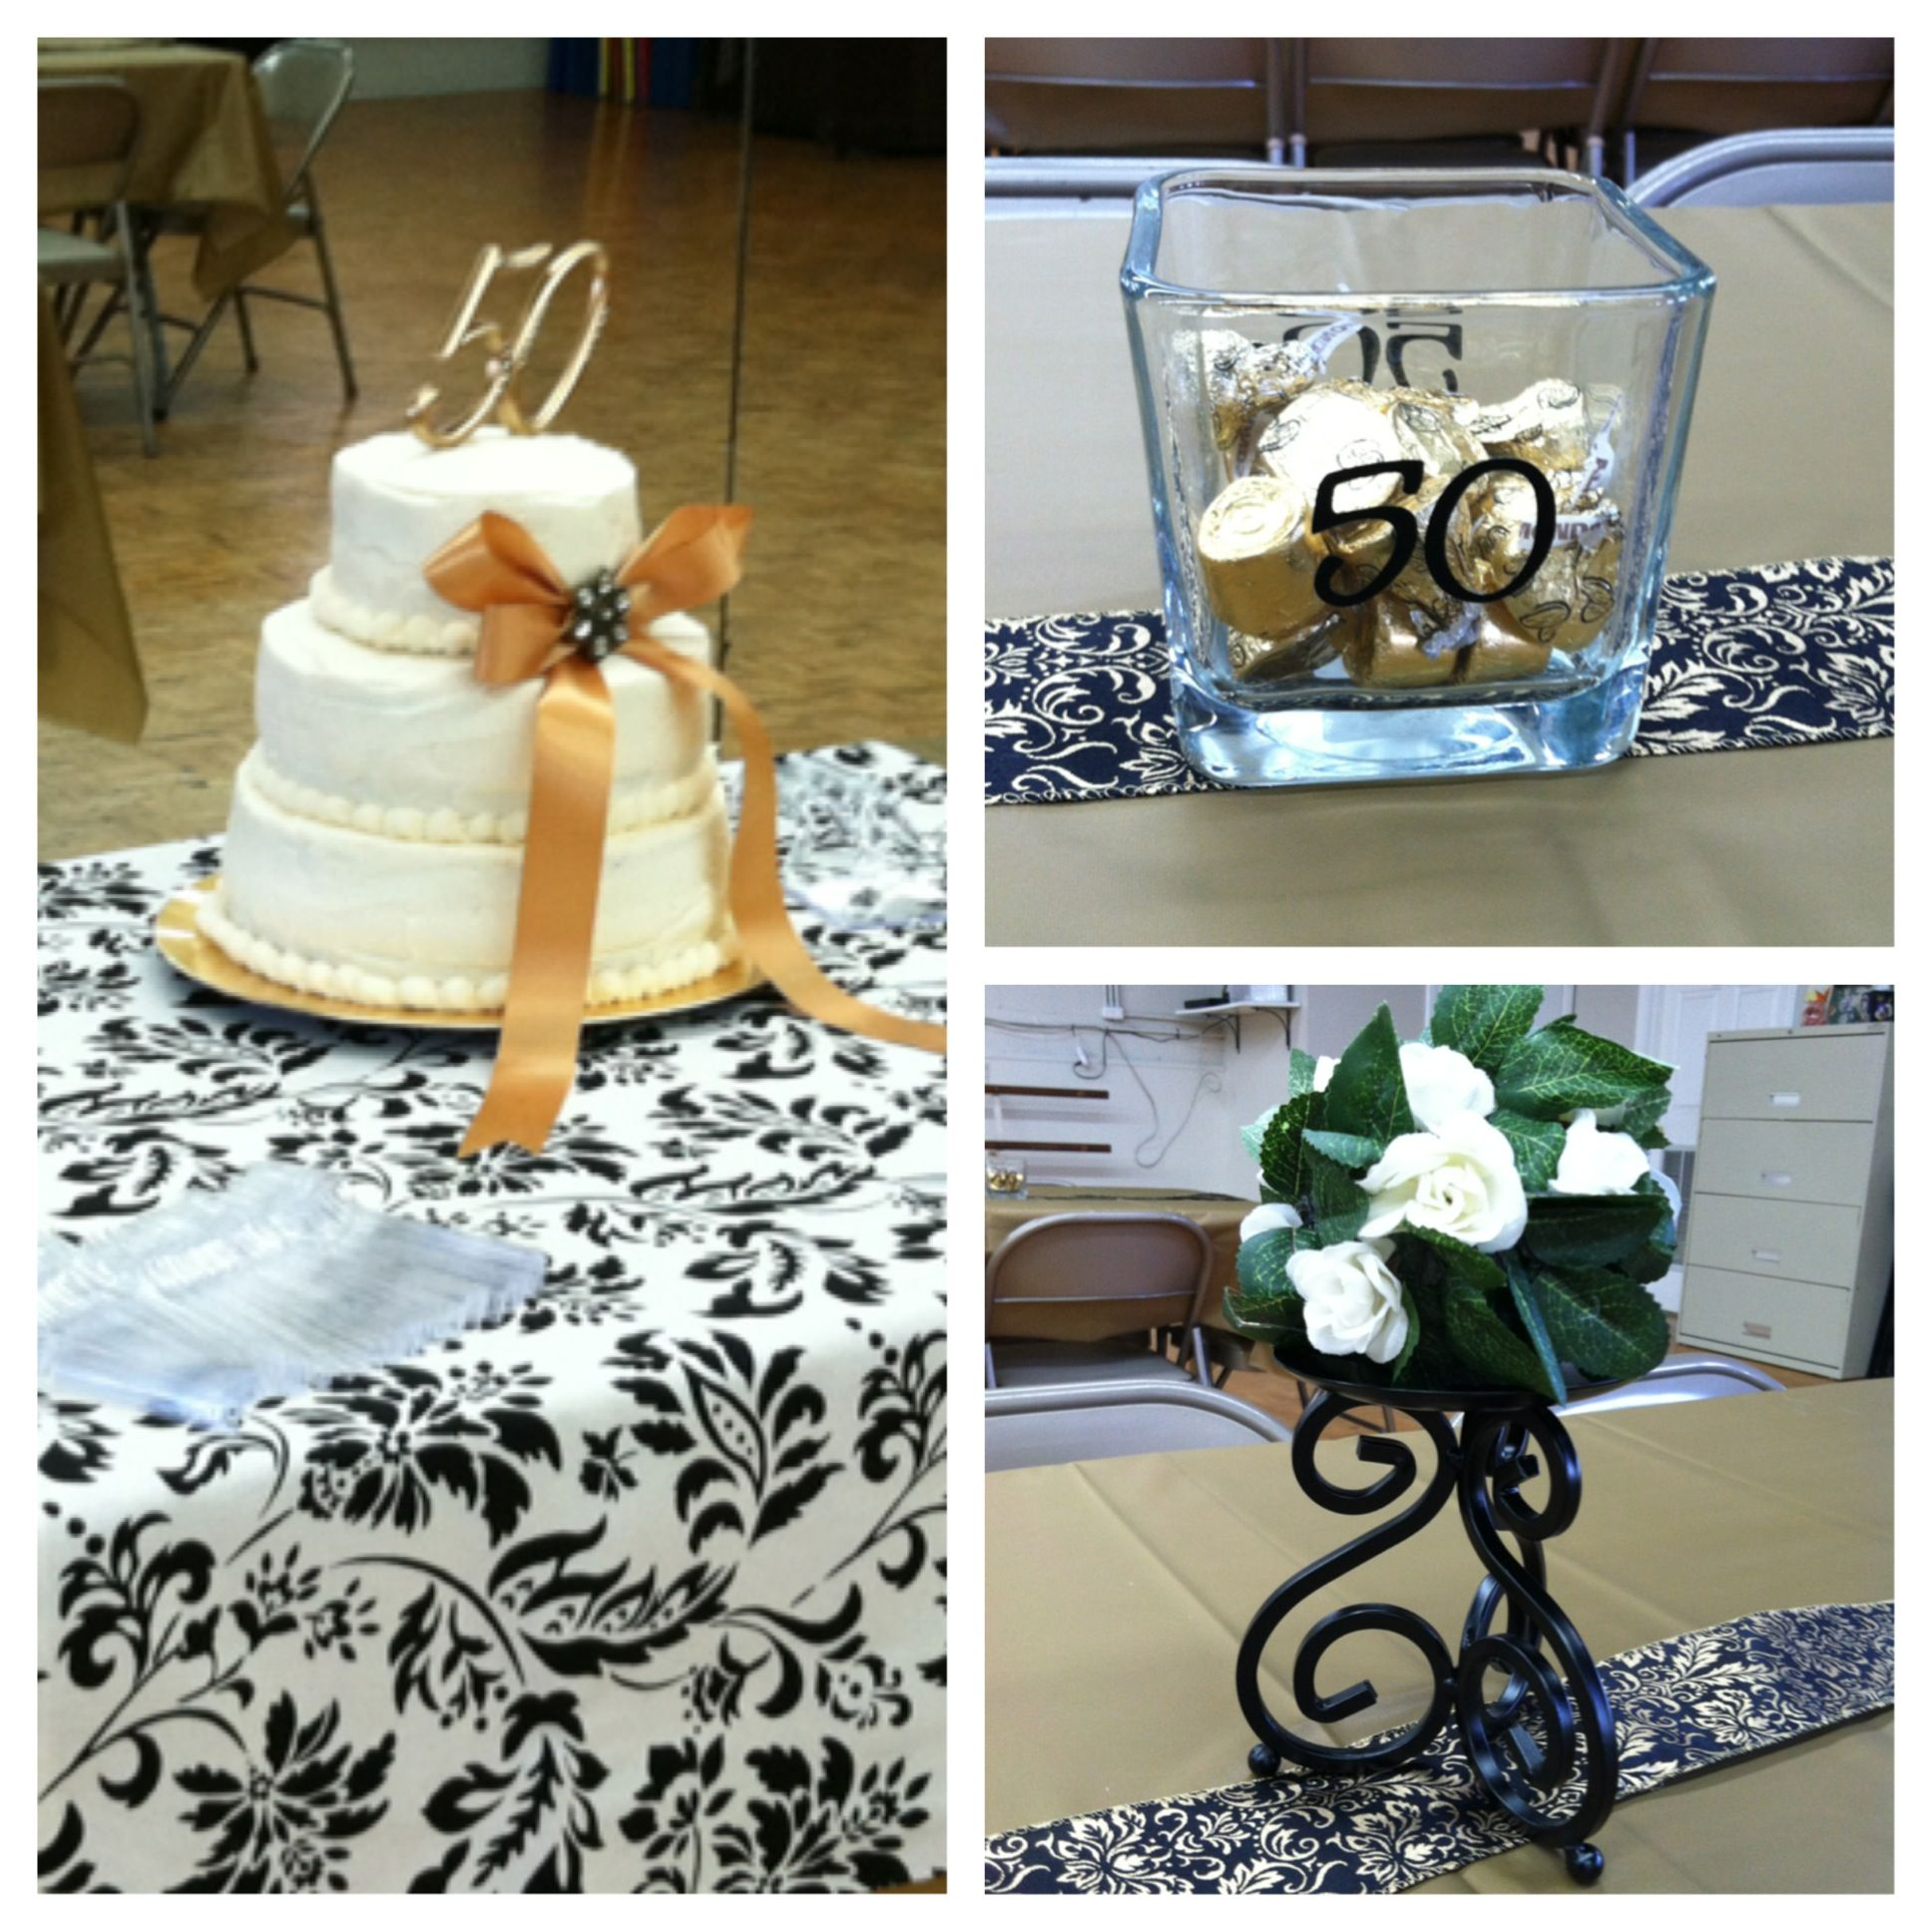 50th Wedding Anniversary Ideas Pinterest : 50th Wedding Anniversary Celebration Ideas Pinterest